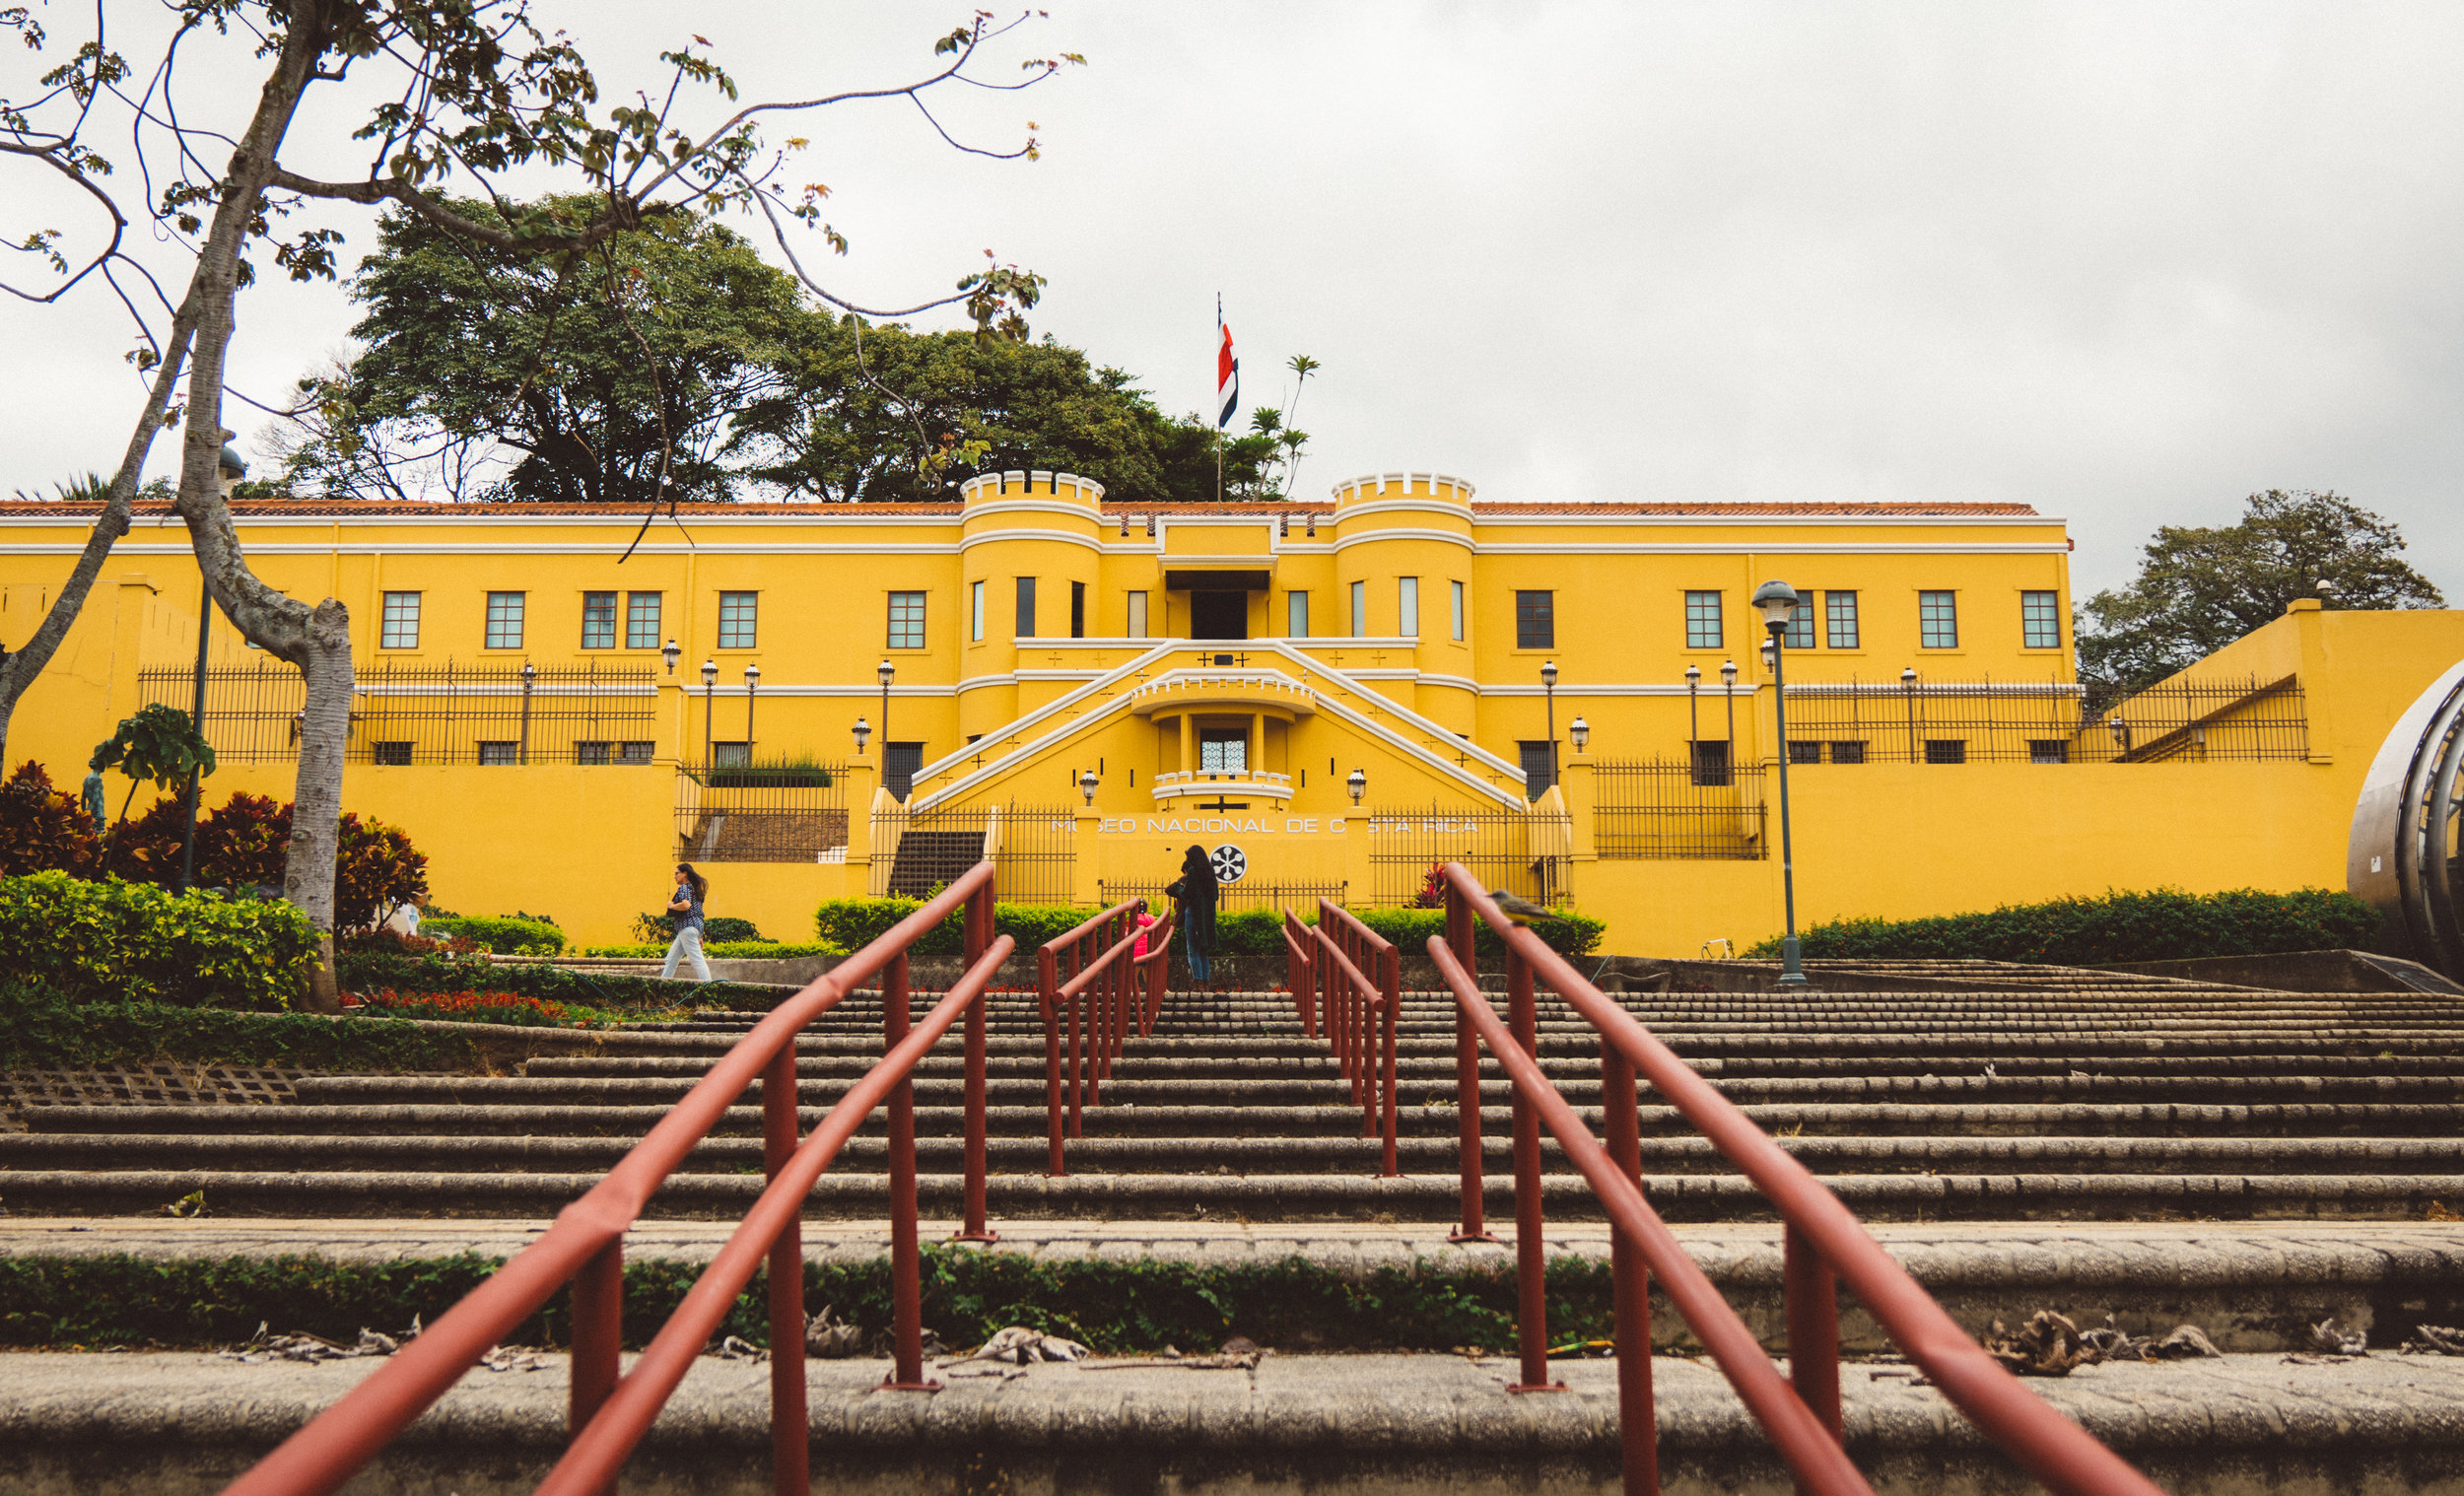 The National Museum of Costa Rica, which we didn't visit.